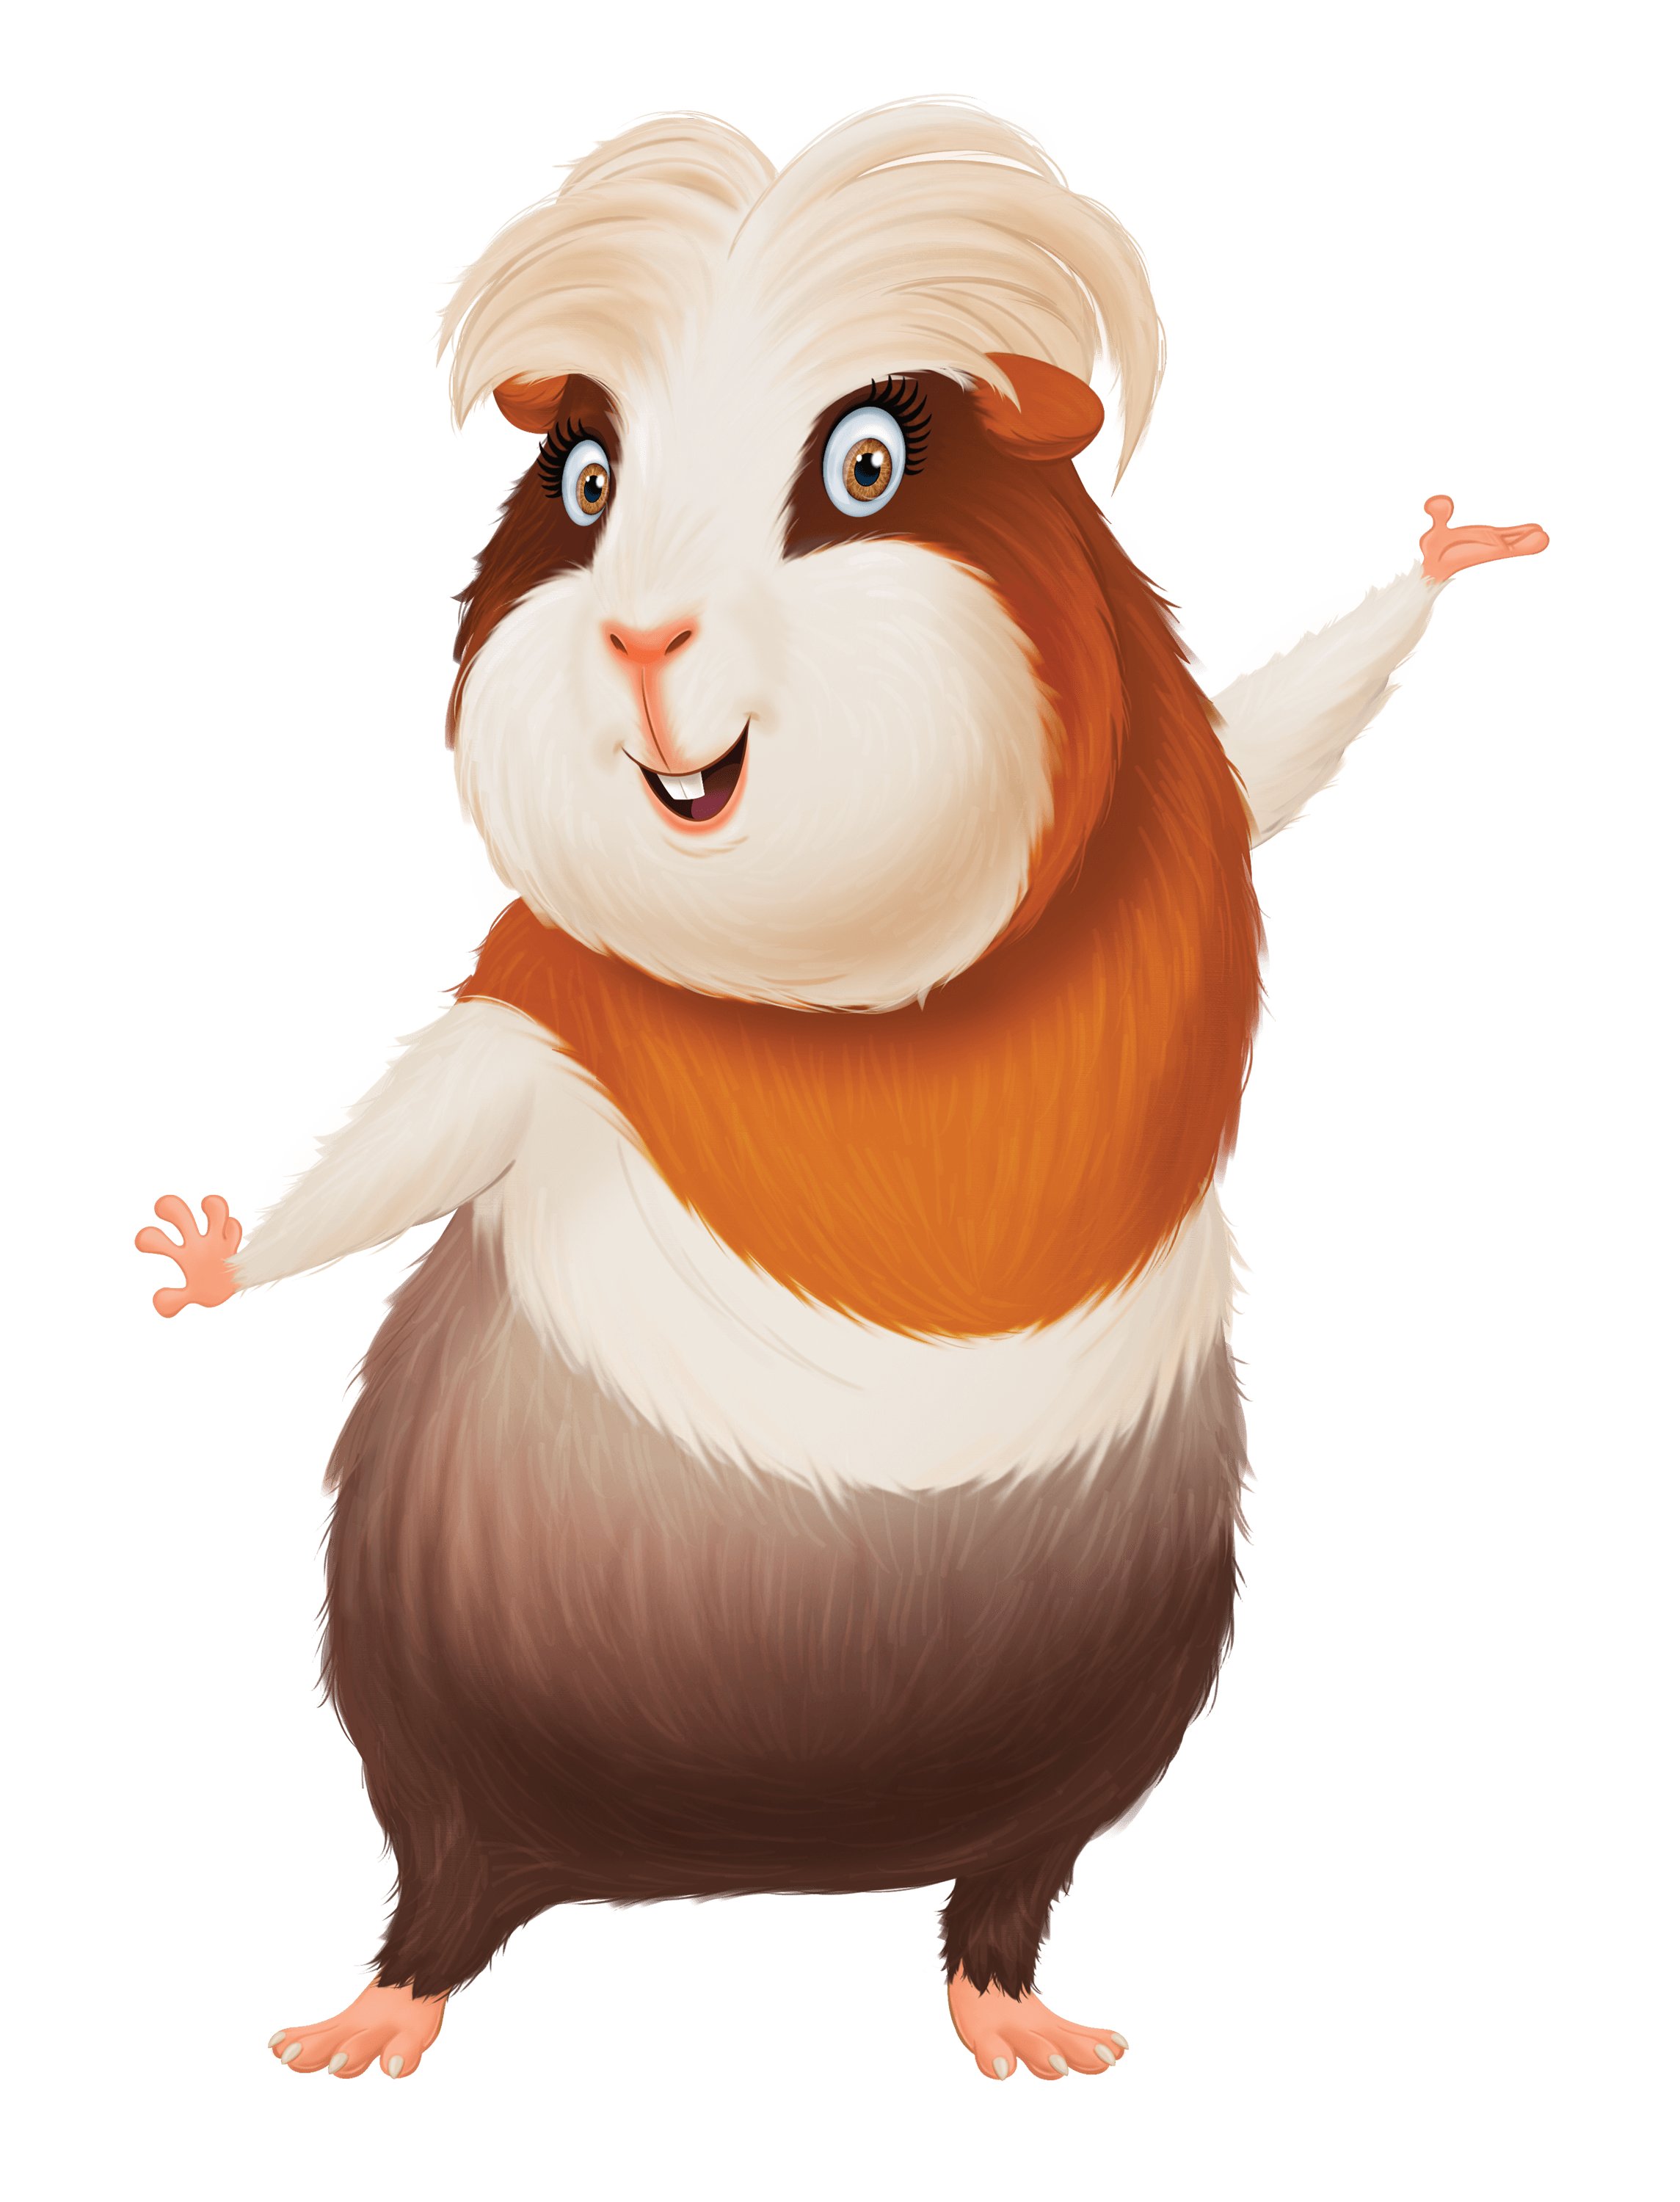 Image Result For Charo Guinea Pig Cartoon